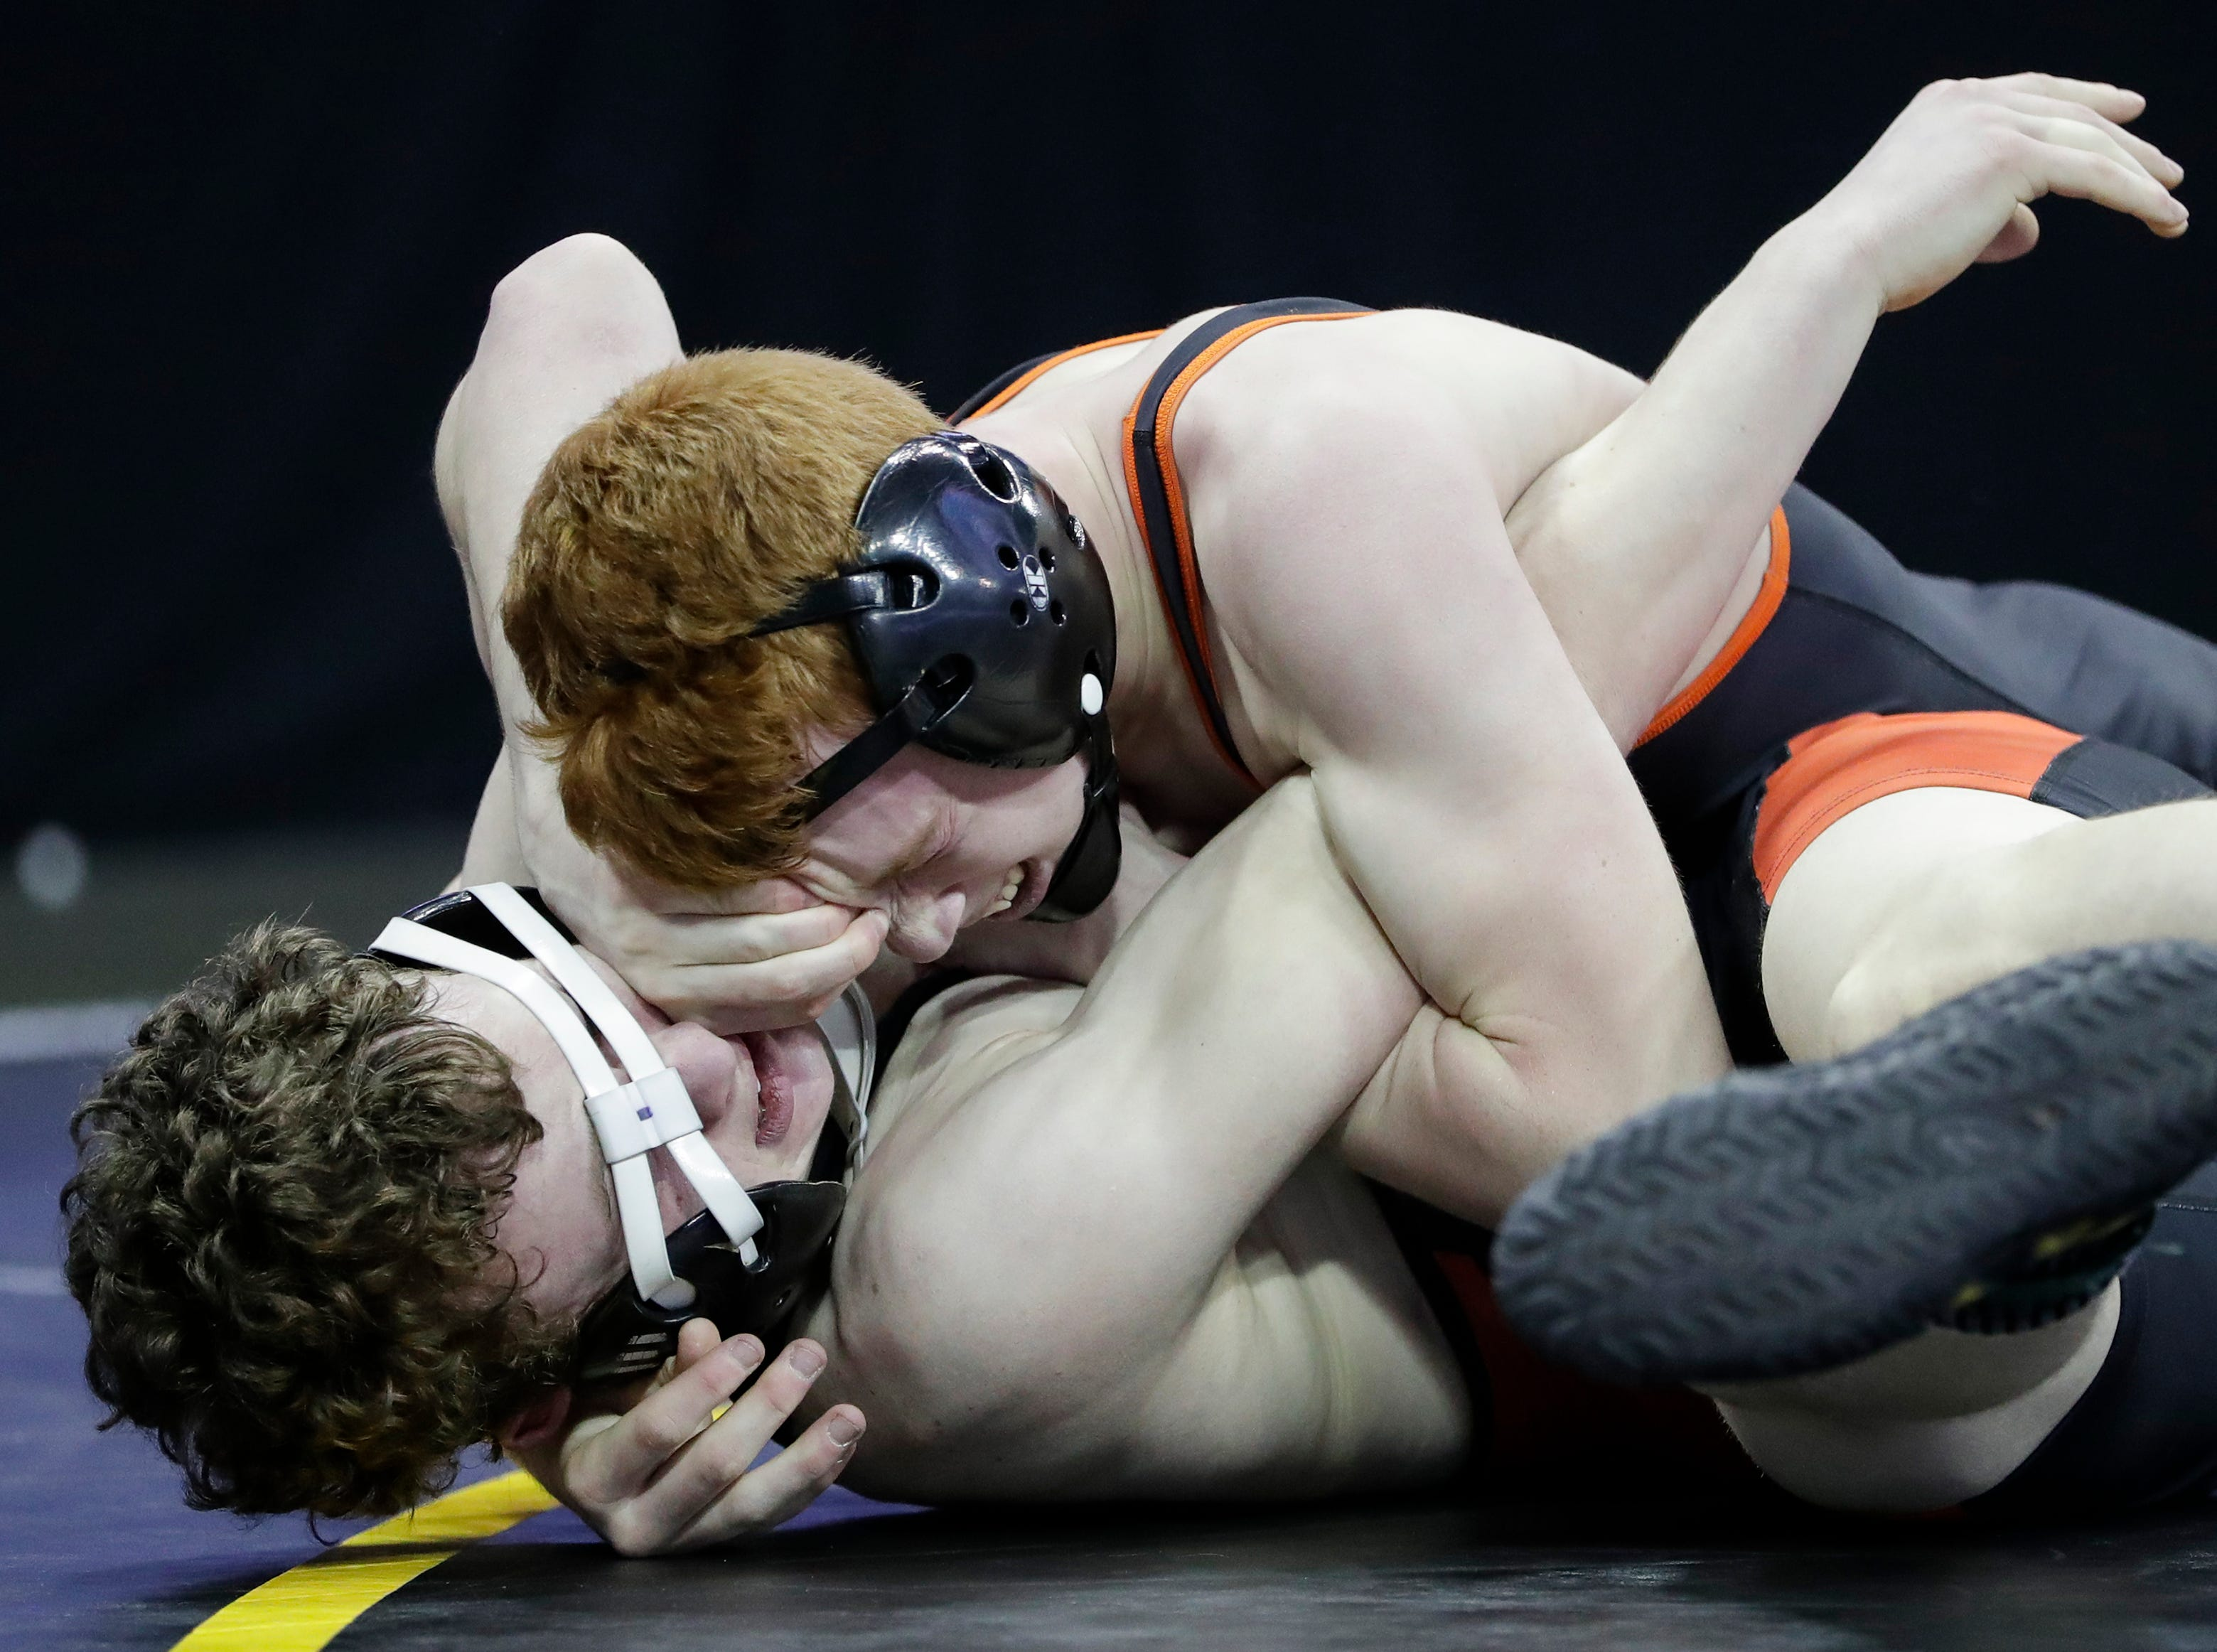 Mishicot's Brant Cracraft, top, pins Phillips' Hunter Bruhn in a Division 3 132-pound weight class preliminary match during the WIAA state individual wrestling tournament at the Kohl Center Thursday, February 21, 2019, in Madison, Wis.